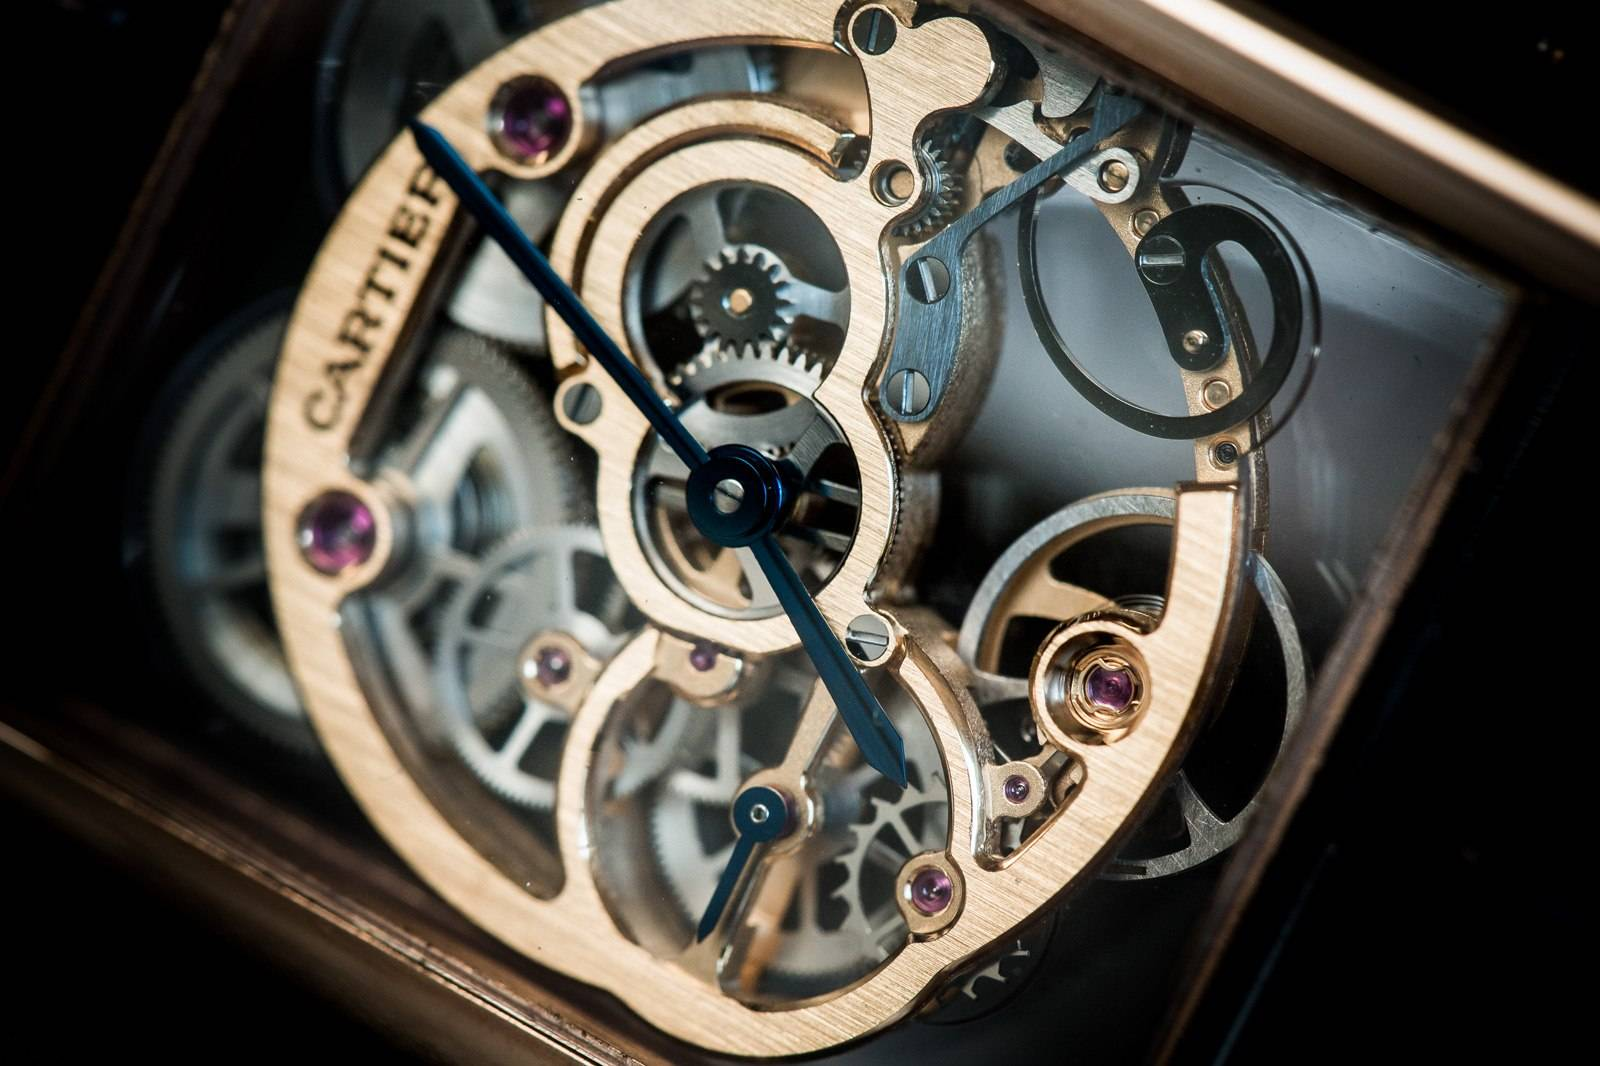 Cartier Tank Louis Cartier Skeleton Sapphire Watch SIHH 2015 Close Up